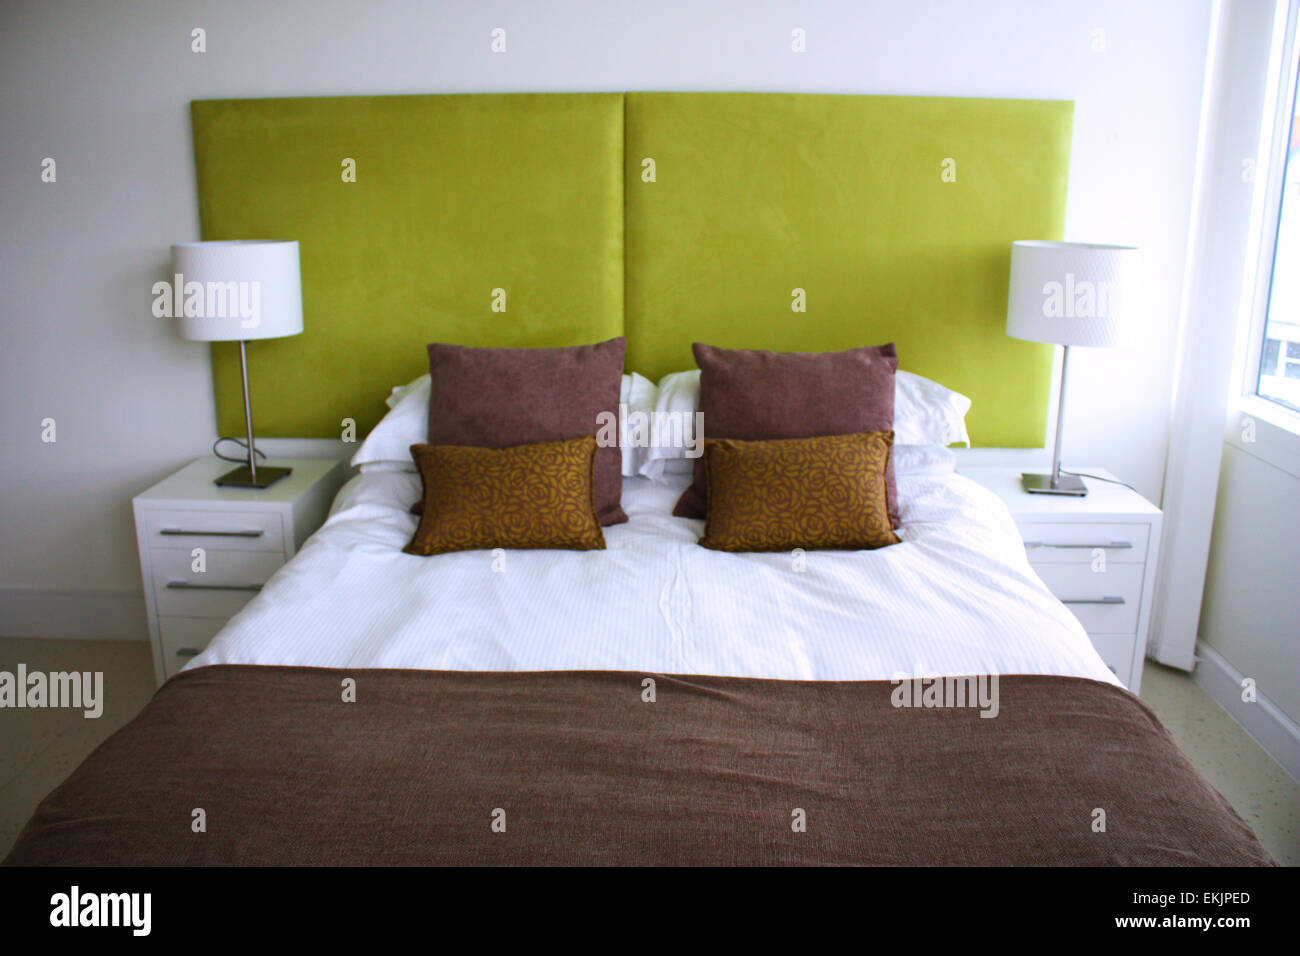 Interior design of a bedroom in an apartment Stock Photo